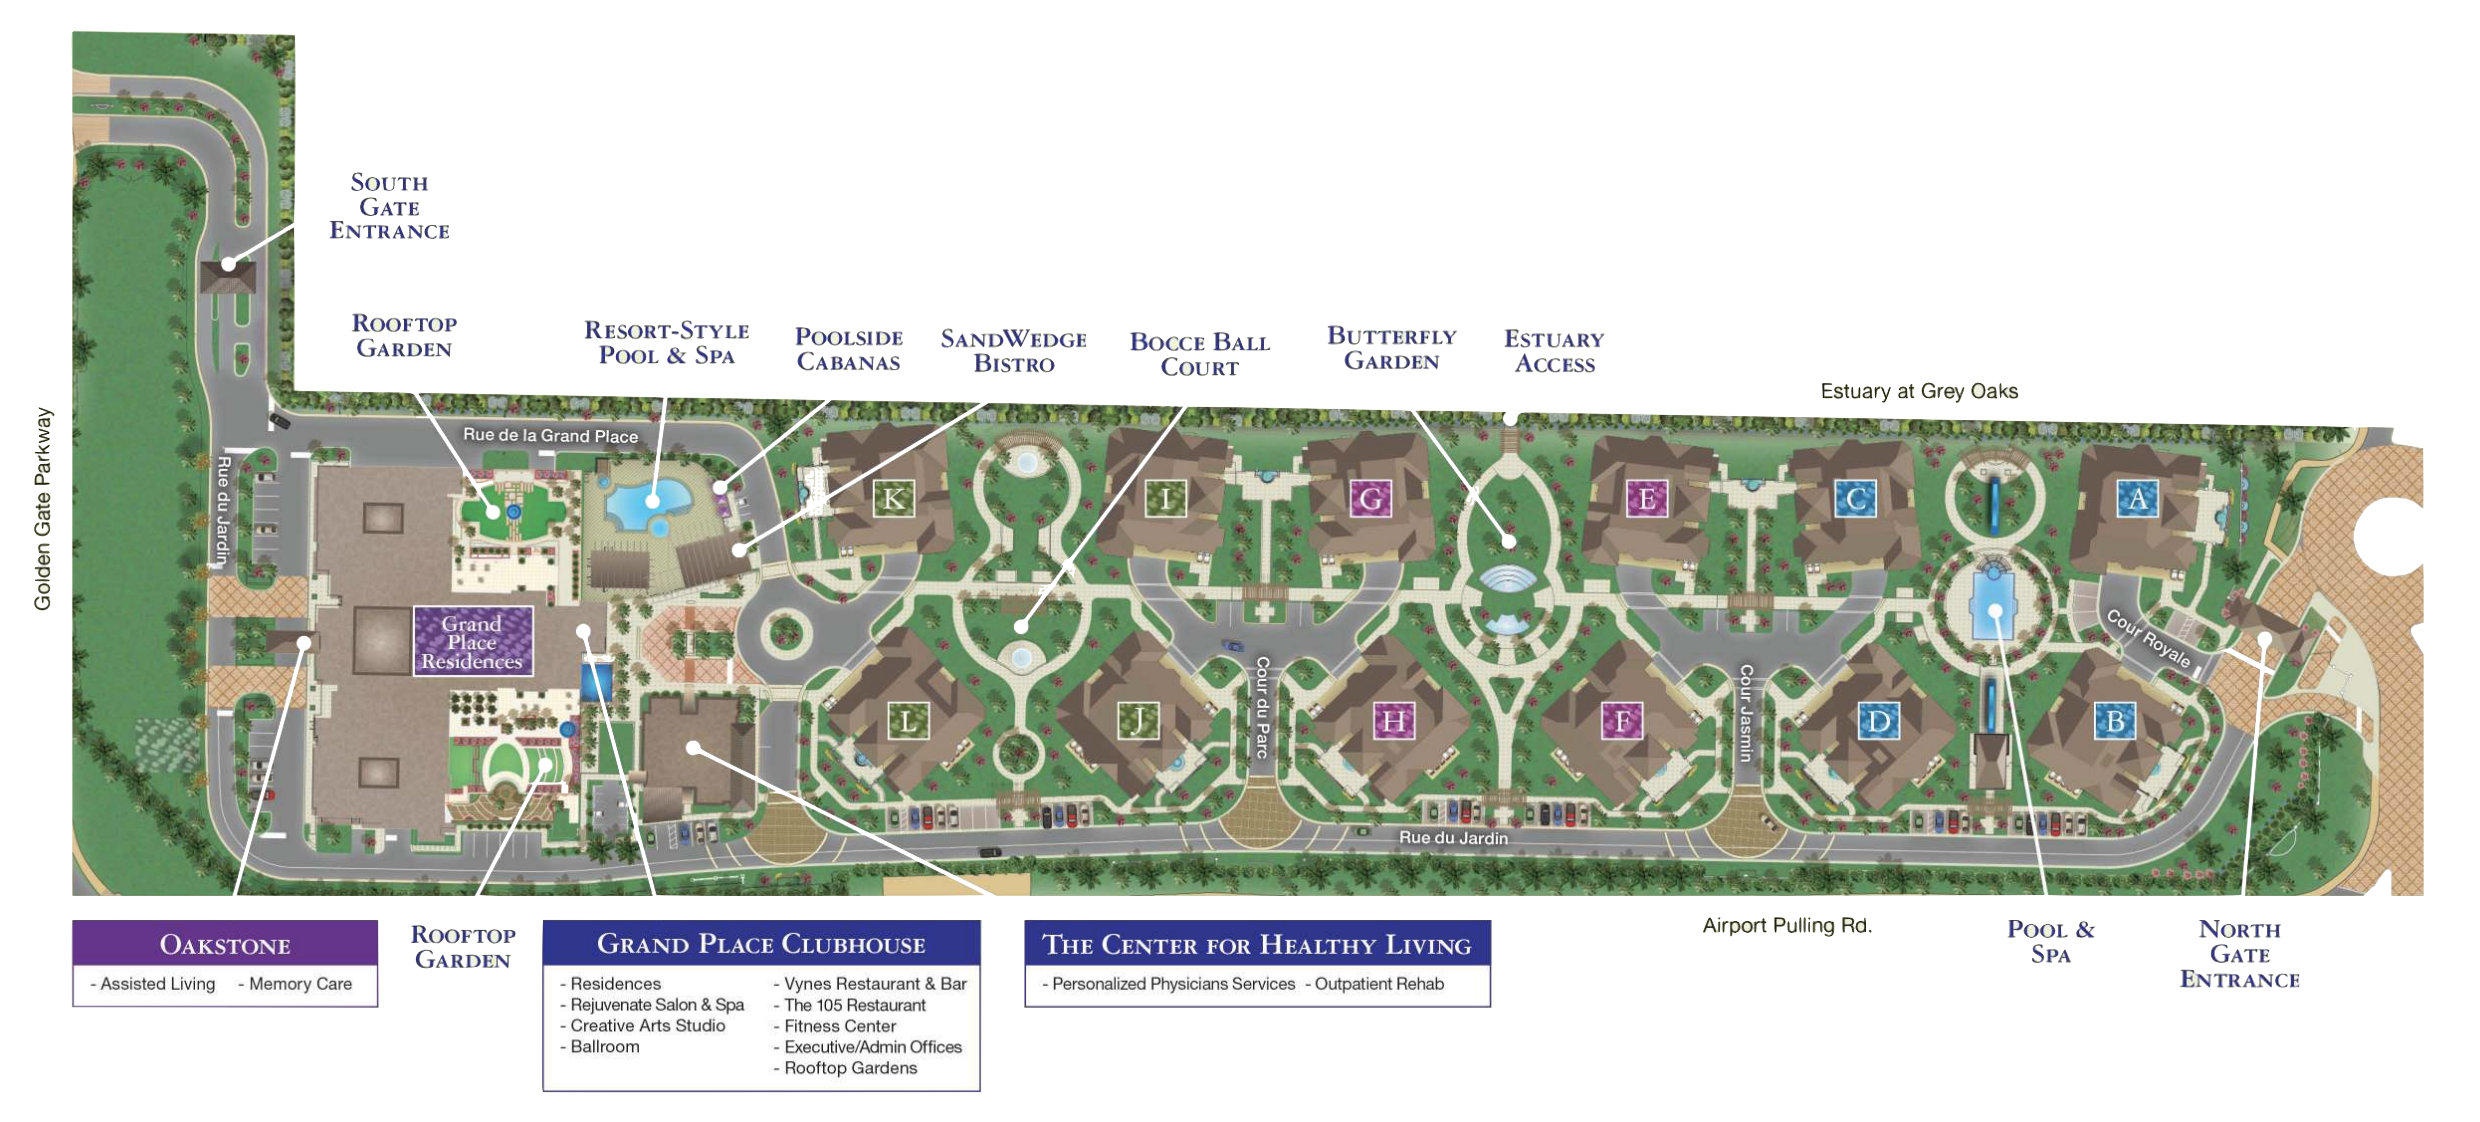 Moorings Park at Grey Oaks | Site Plan